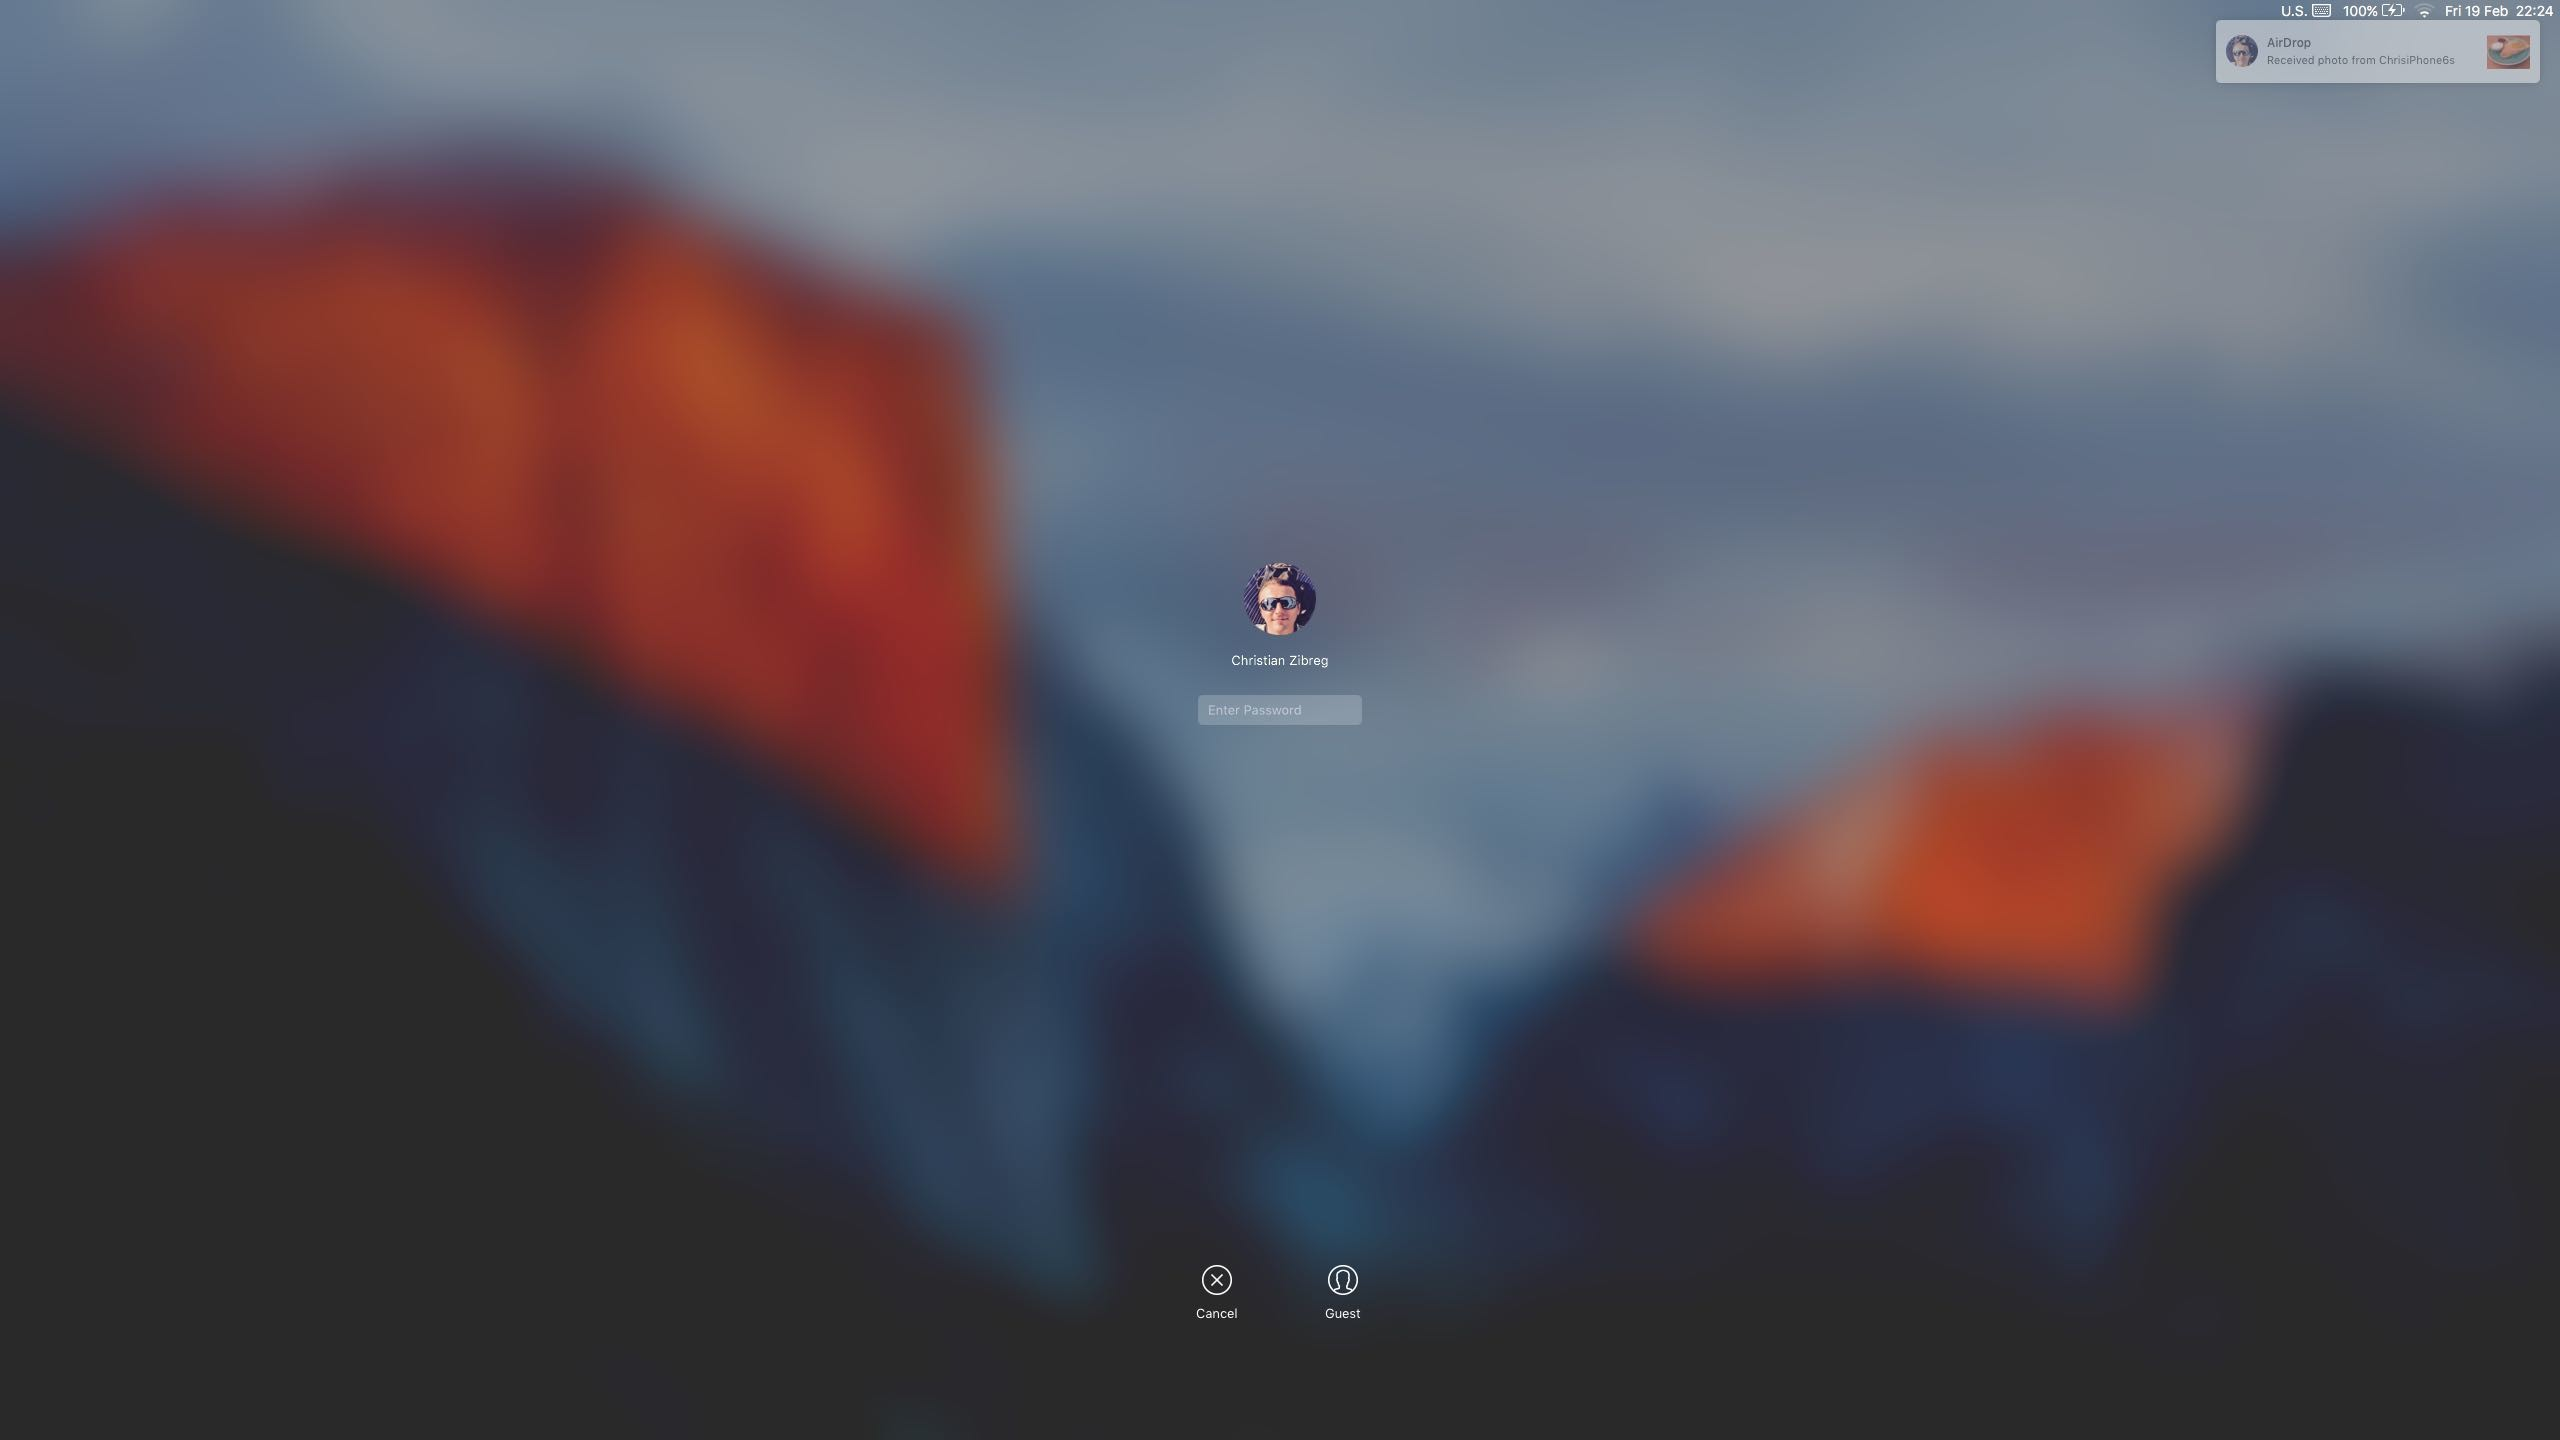 2560x1440 OS X El Capitan AirDrop notification Lock screen Mac screenshot 004